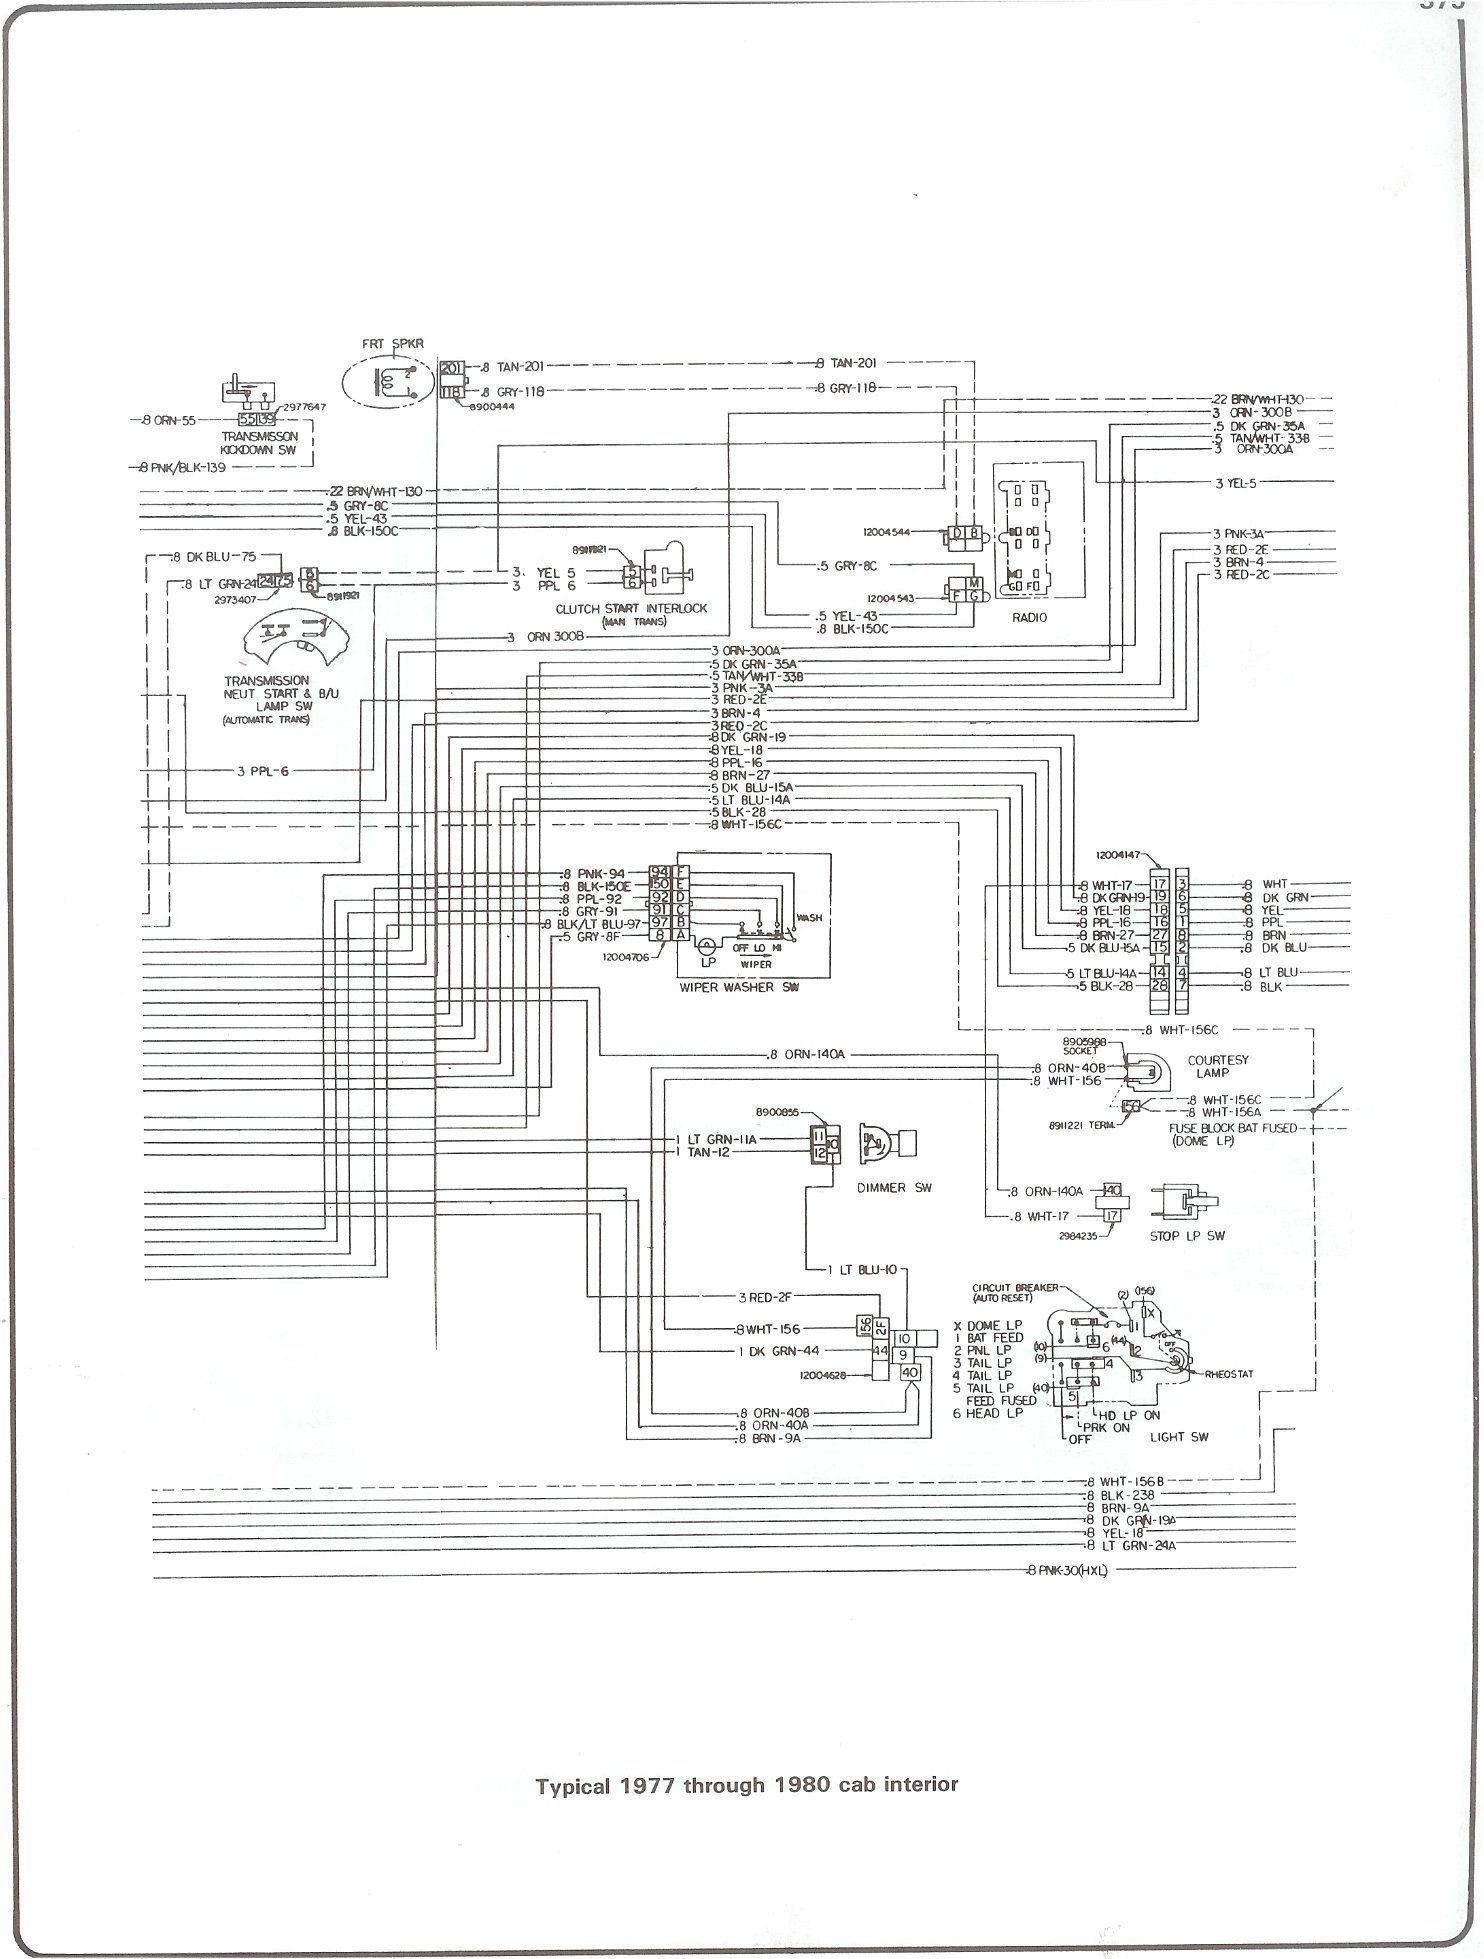 77 80_cab_inter complete 73 87 wiring diagrams c10 wiring diagram at edmiracle.co